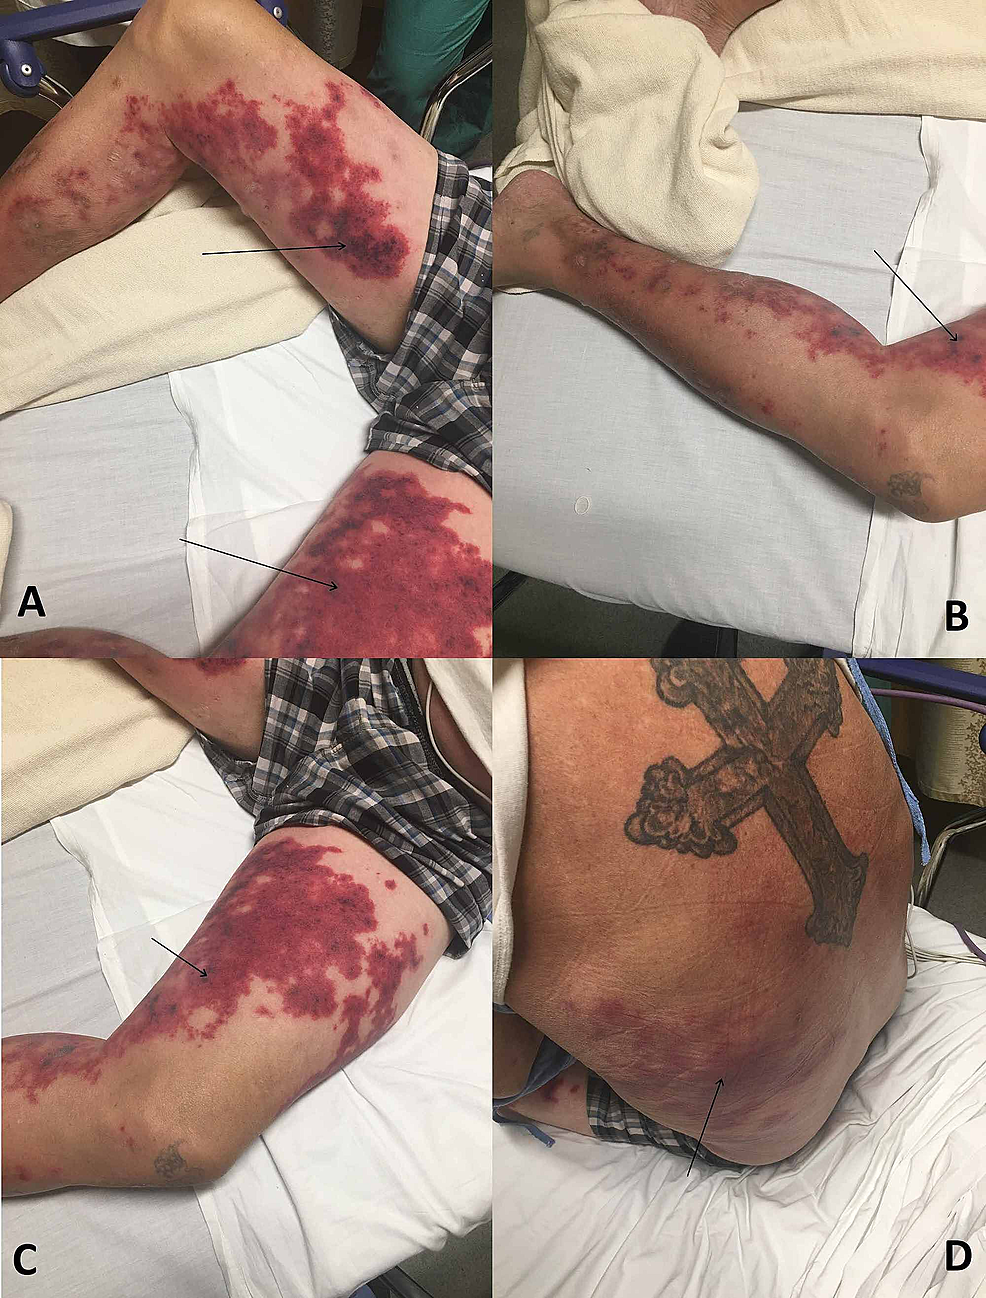 Levamisole-induced-vasculitis-in-a-cocaine-user.-Images-obtained-one-week-after-cocaine-use.